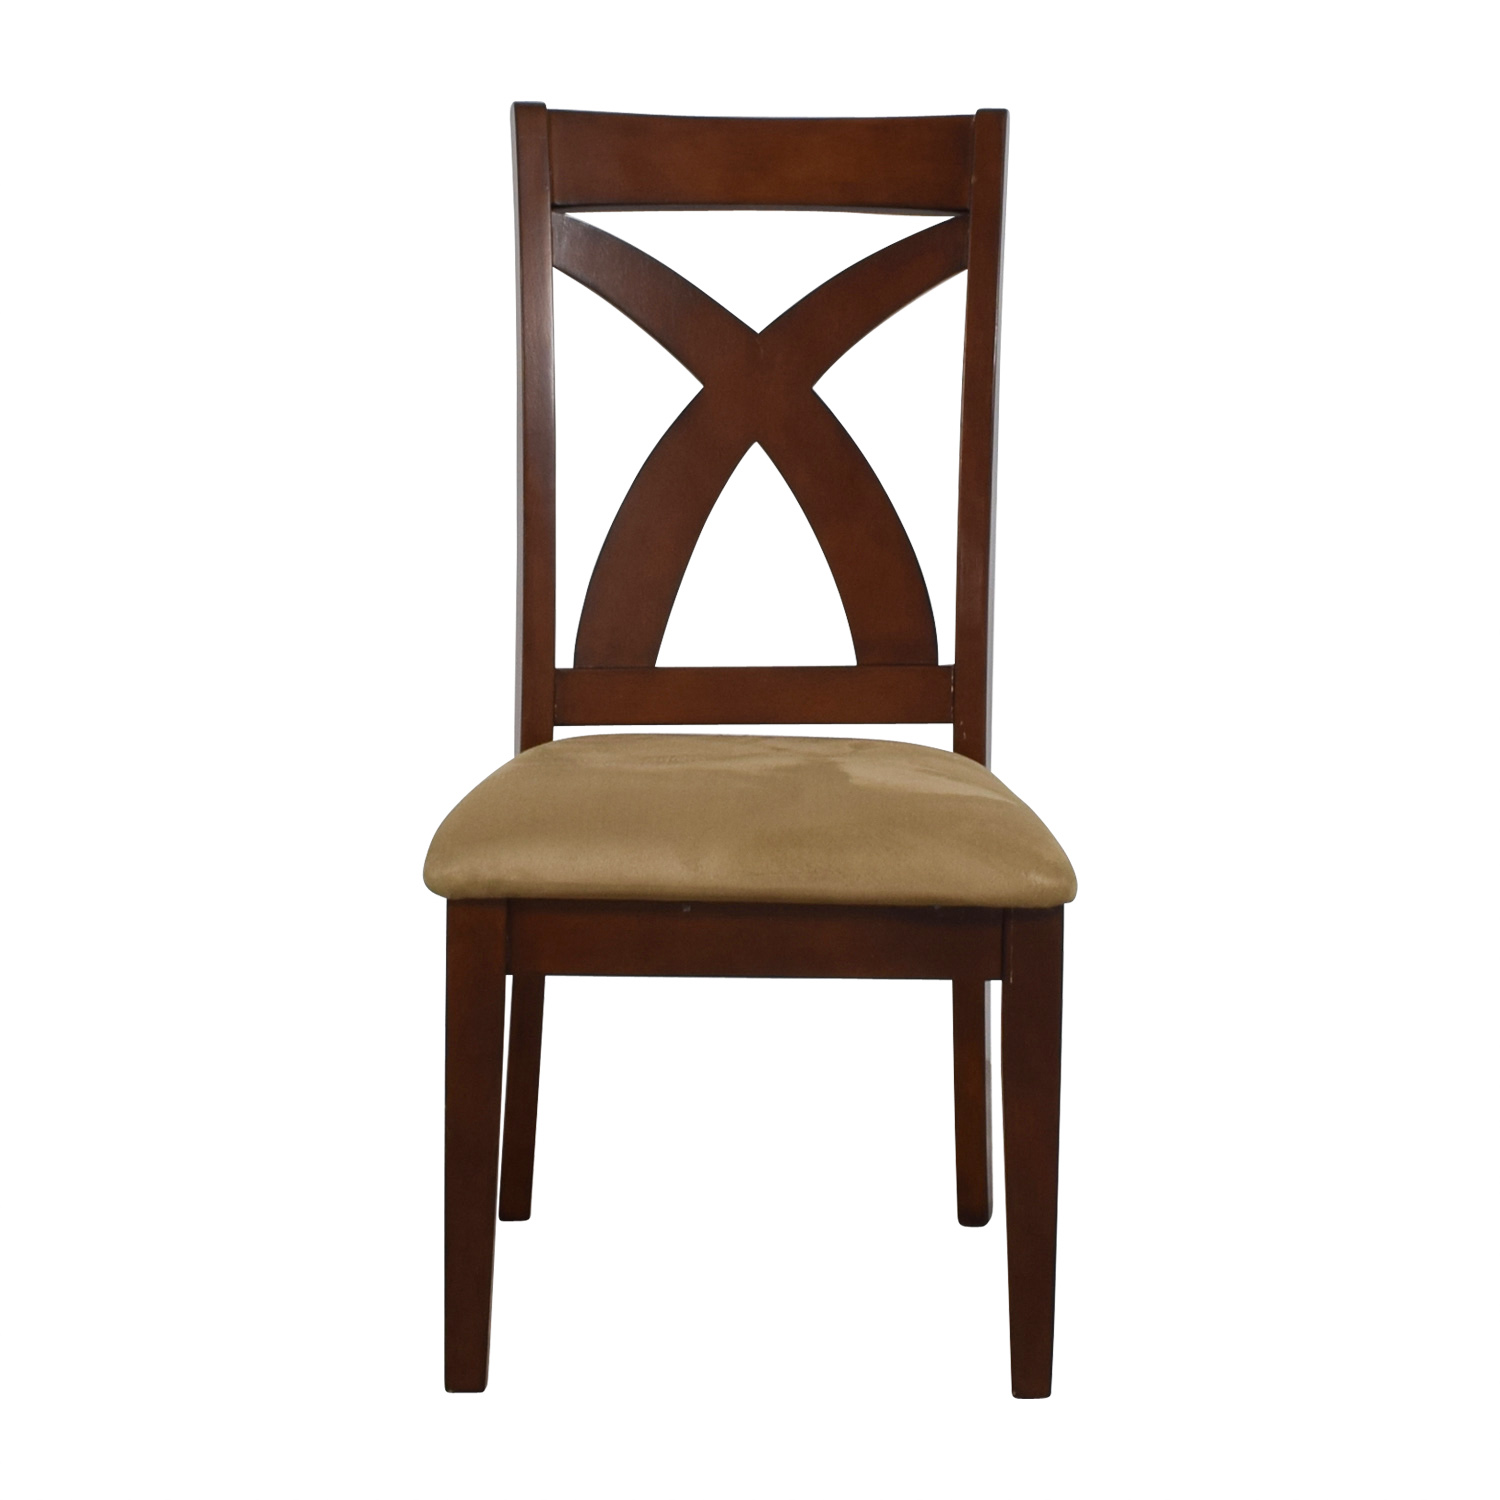 Cross Back Wood Chair with Padded Seat second hand